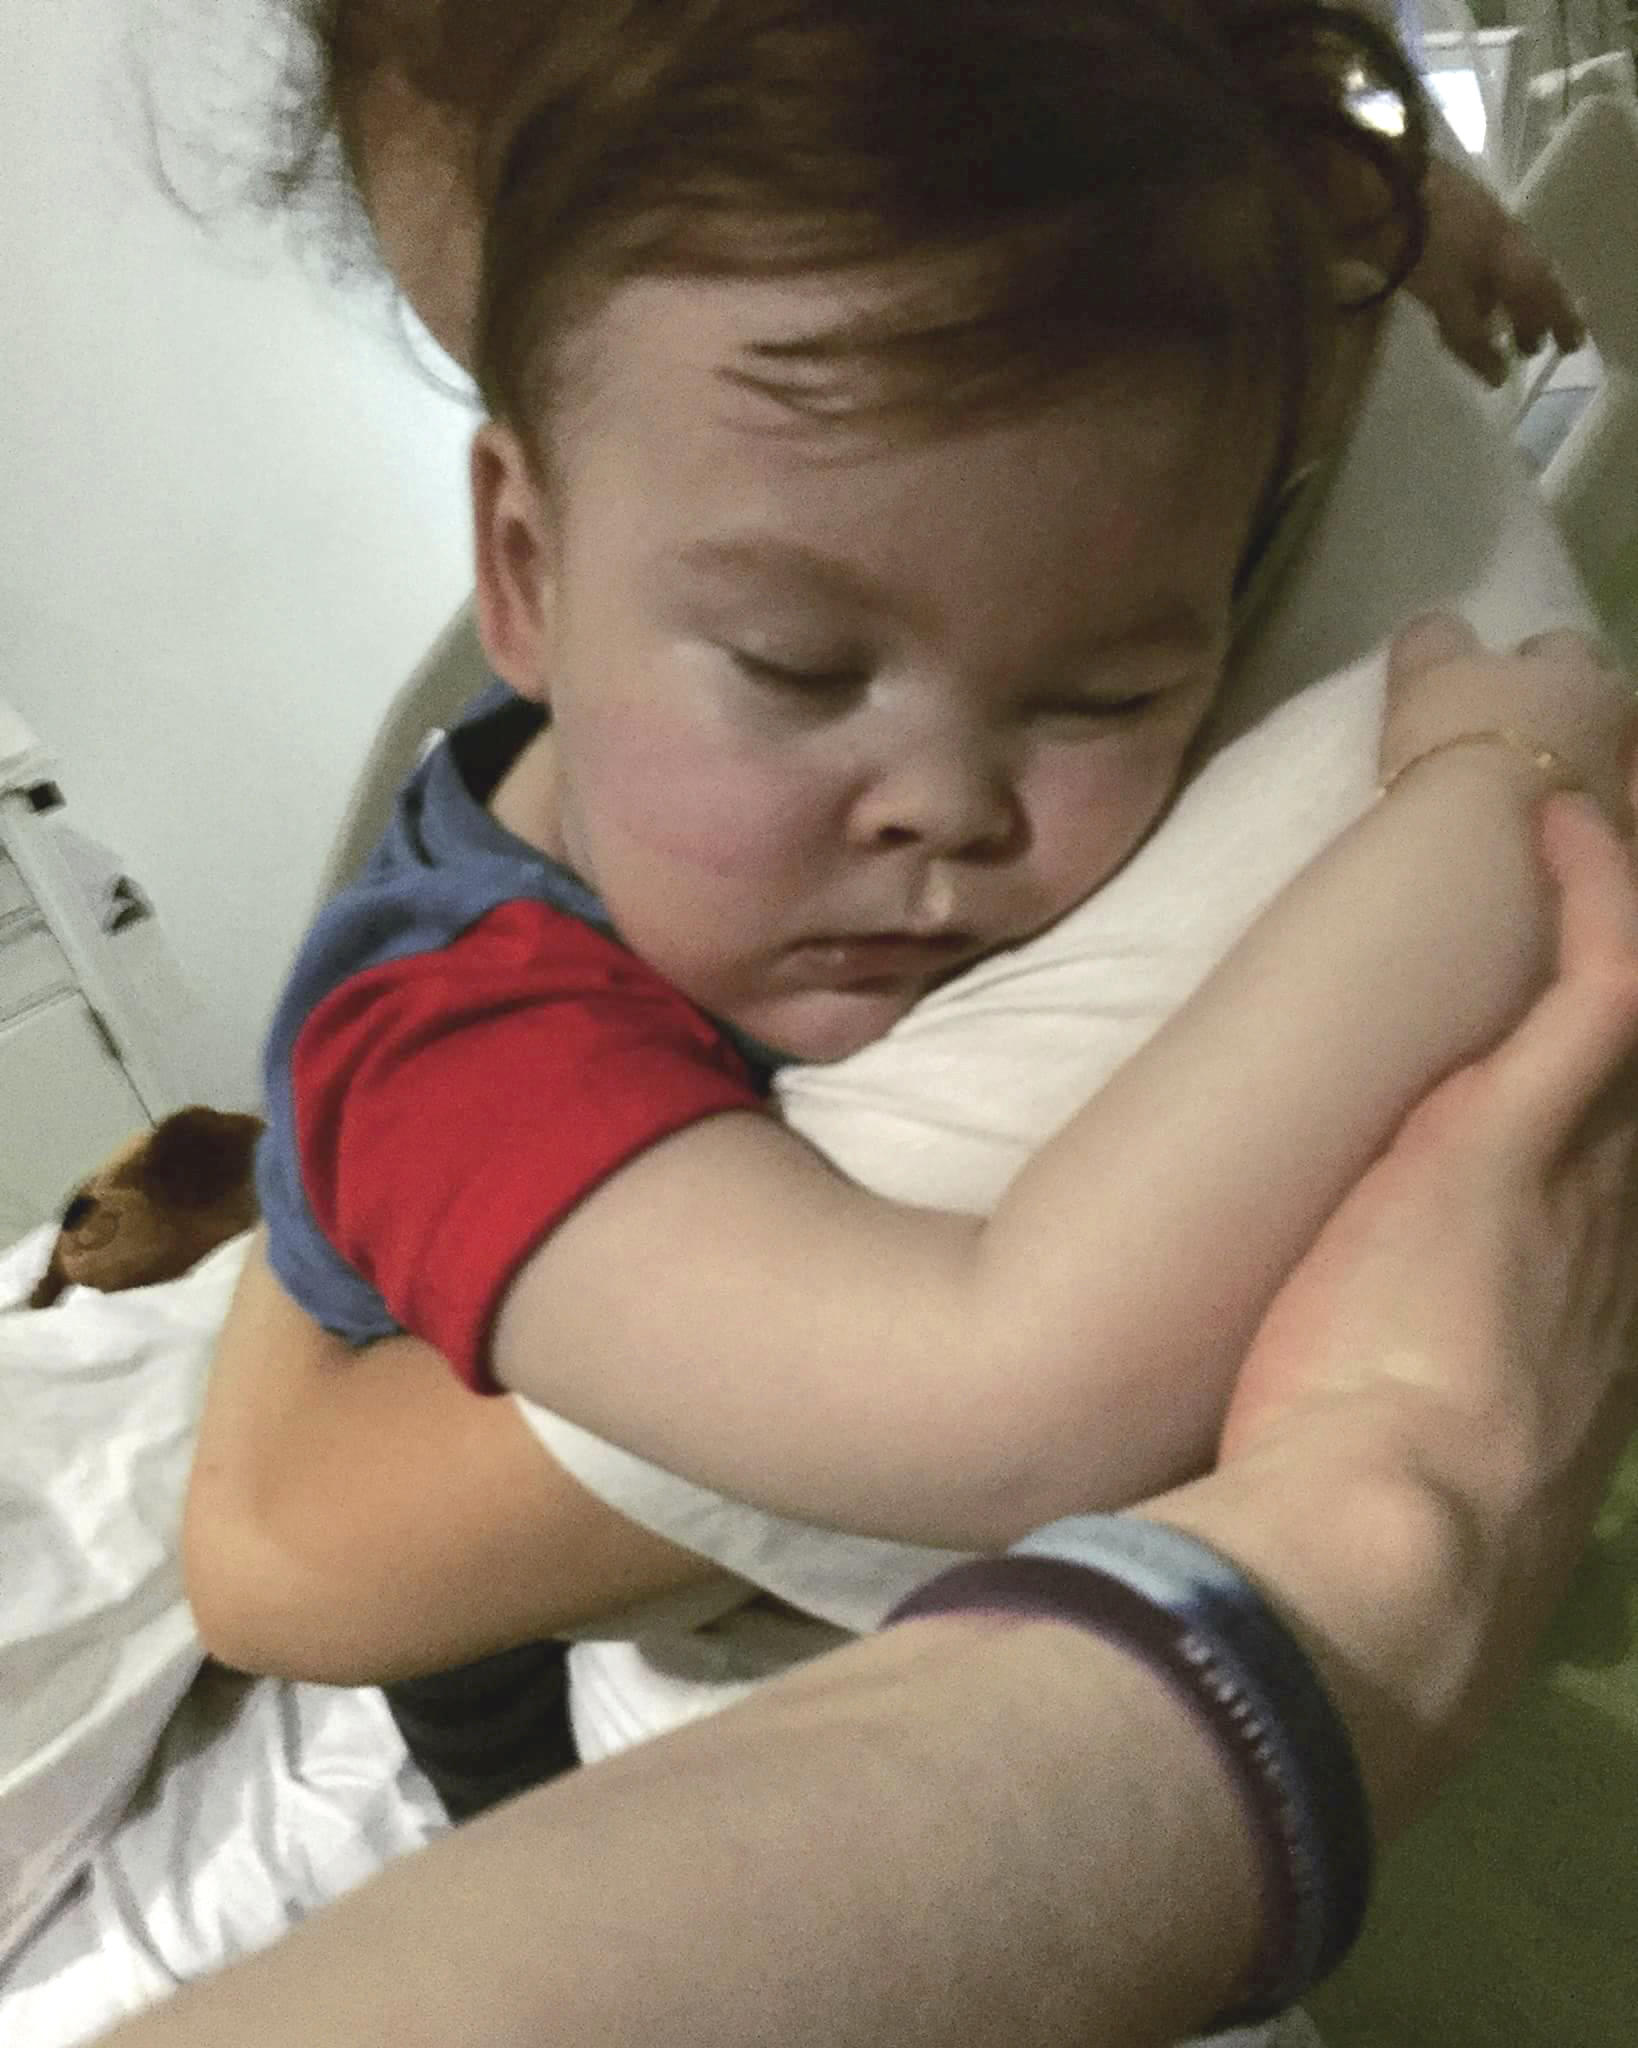 Alfie es abrazada por su madre, Kate James en el hospital Alder Hey en Liverpool. (Alfies Army Official via AP)